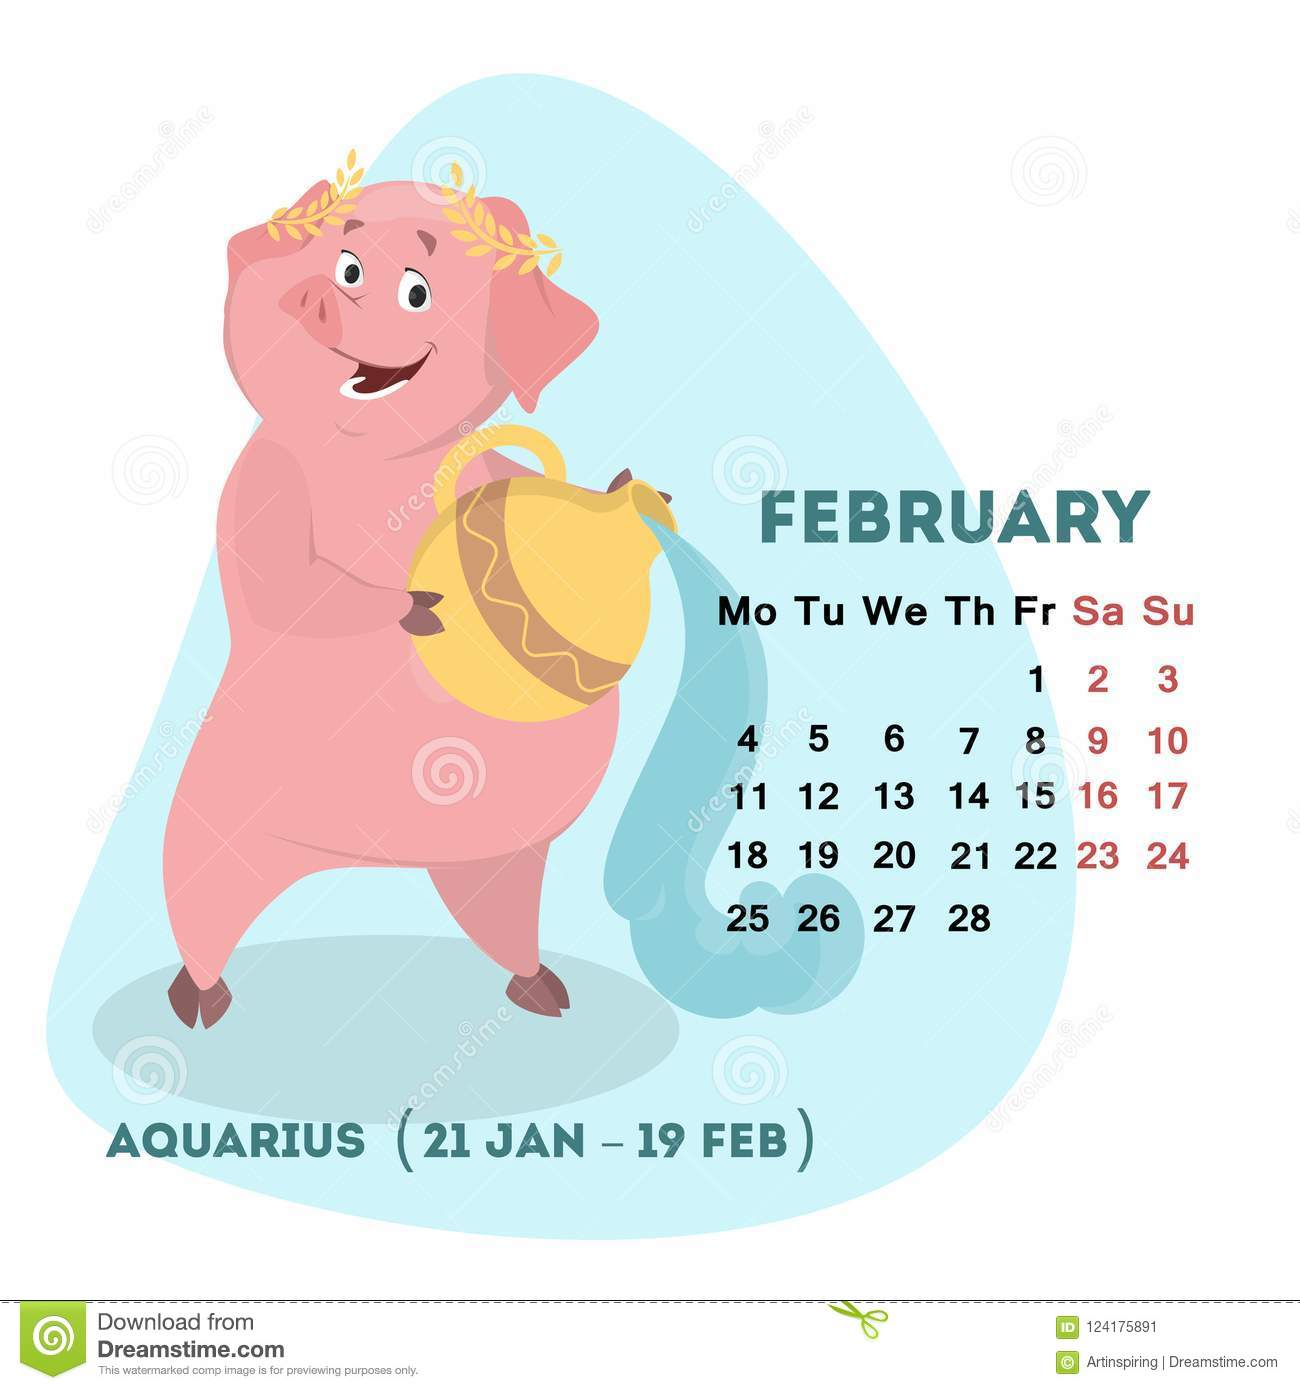 Chinese Calendar February 2019 Pig Calendar For February 2019 With Horoscope Sign Stock Vector